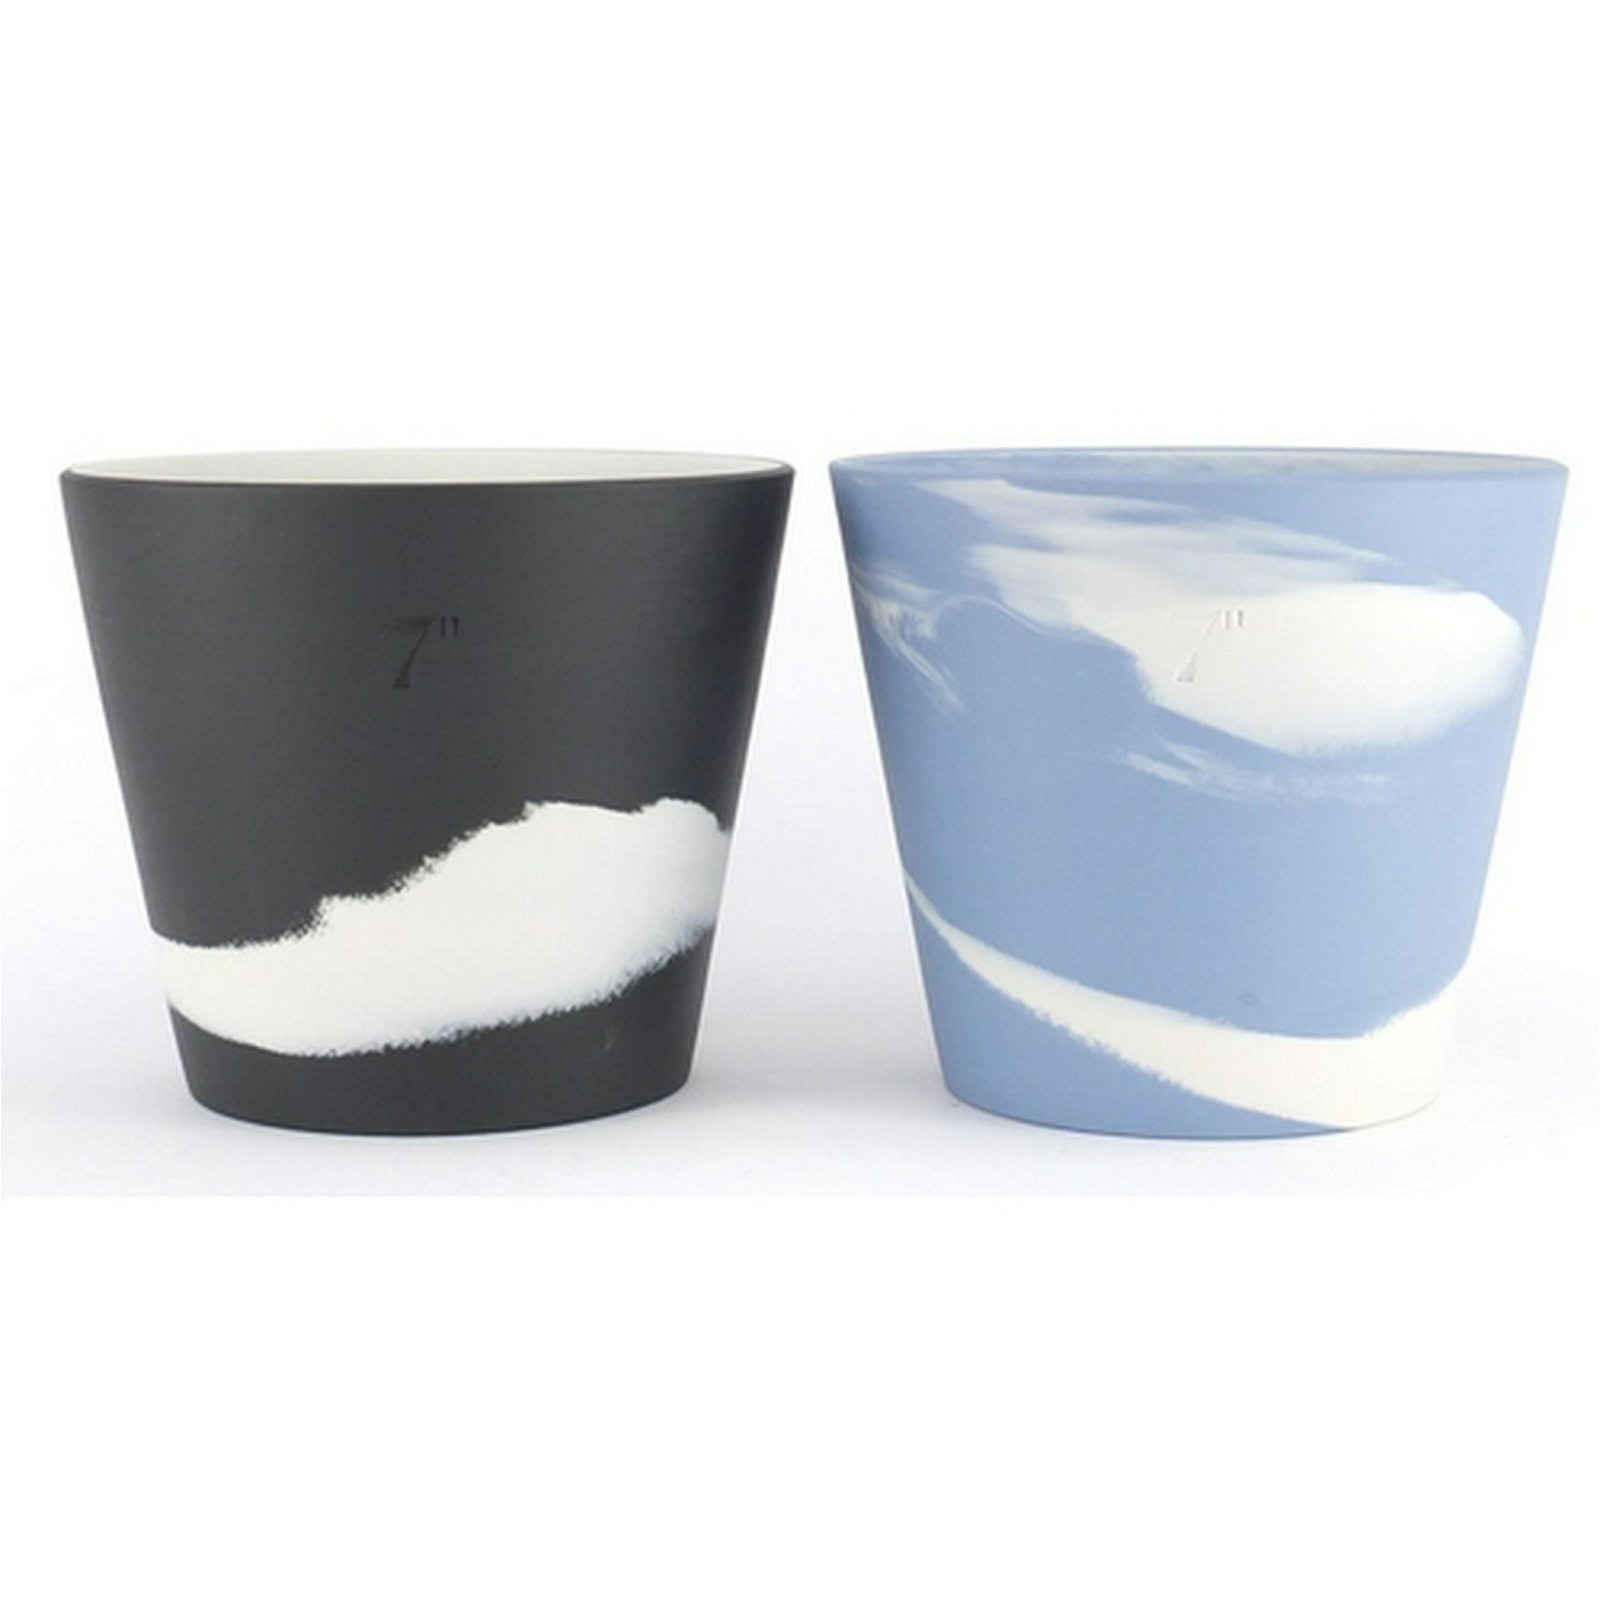 Two Wedgwood Jasper Ware Burlington plant pots, each